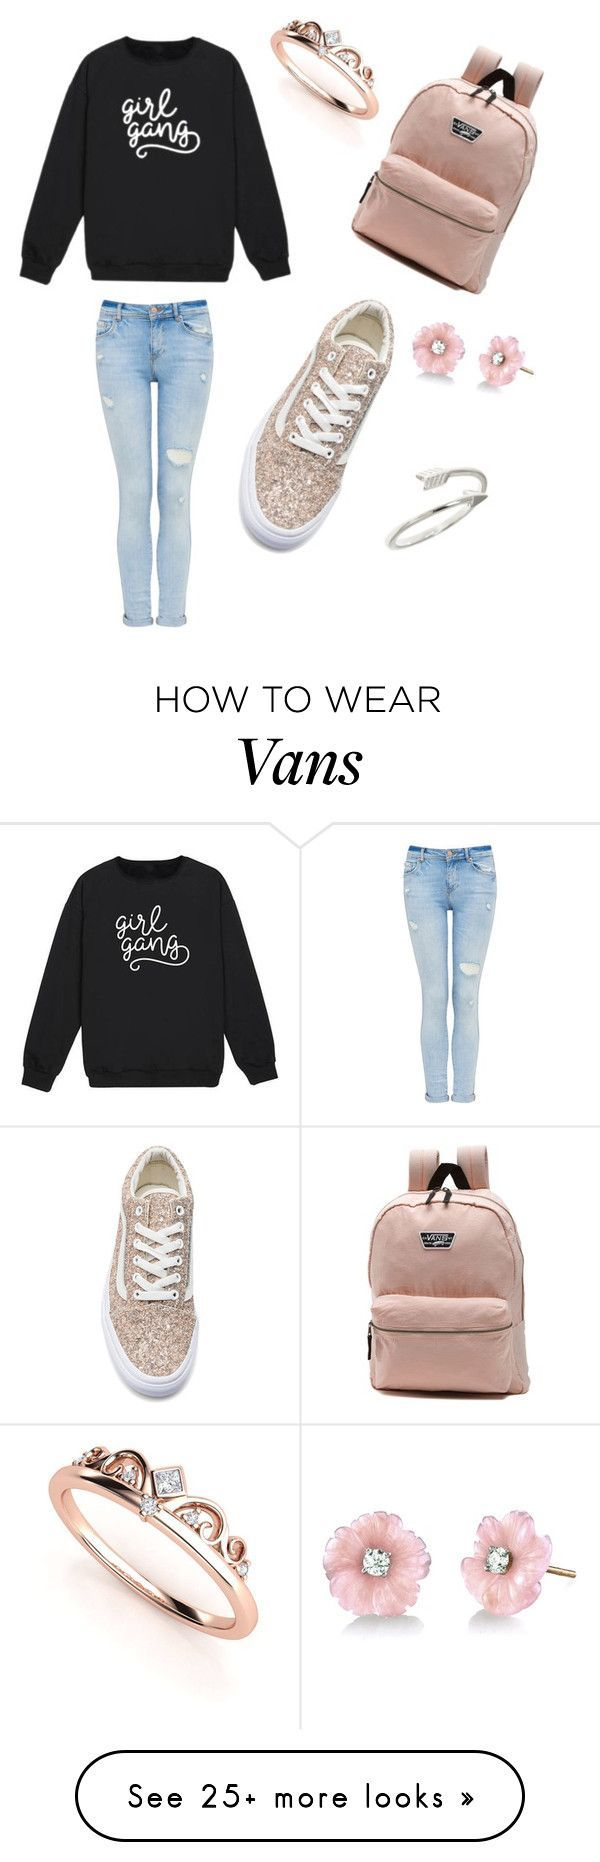 """Untitled #6"" by wisedog74 on Polyvore featuring Vans and Irene Neuwirth"